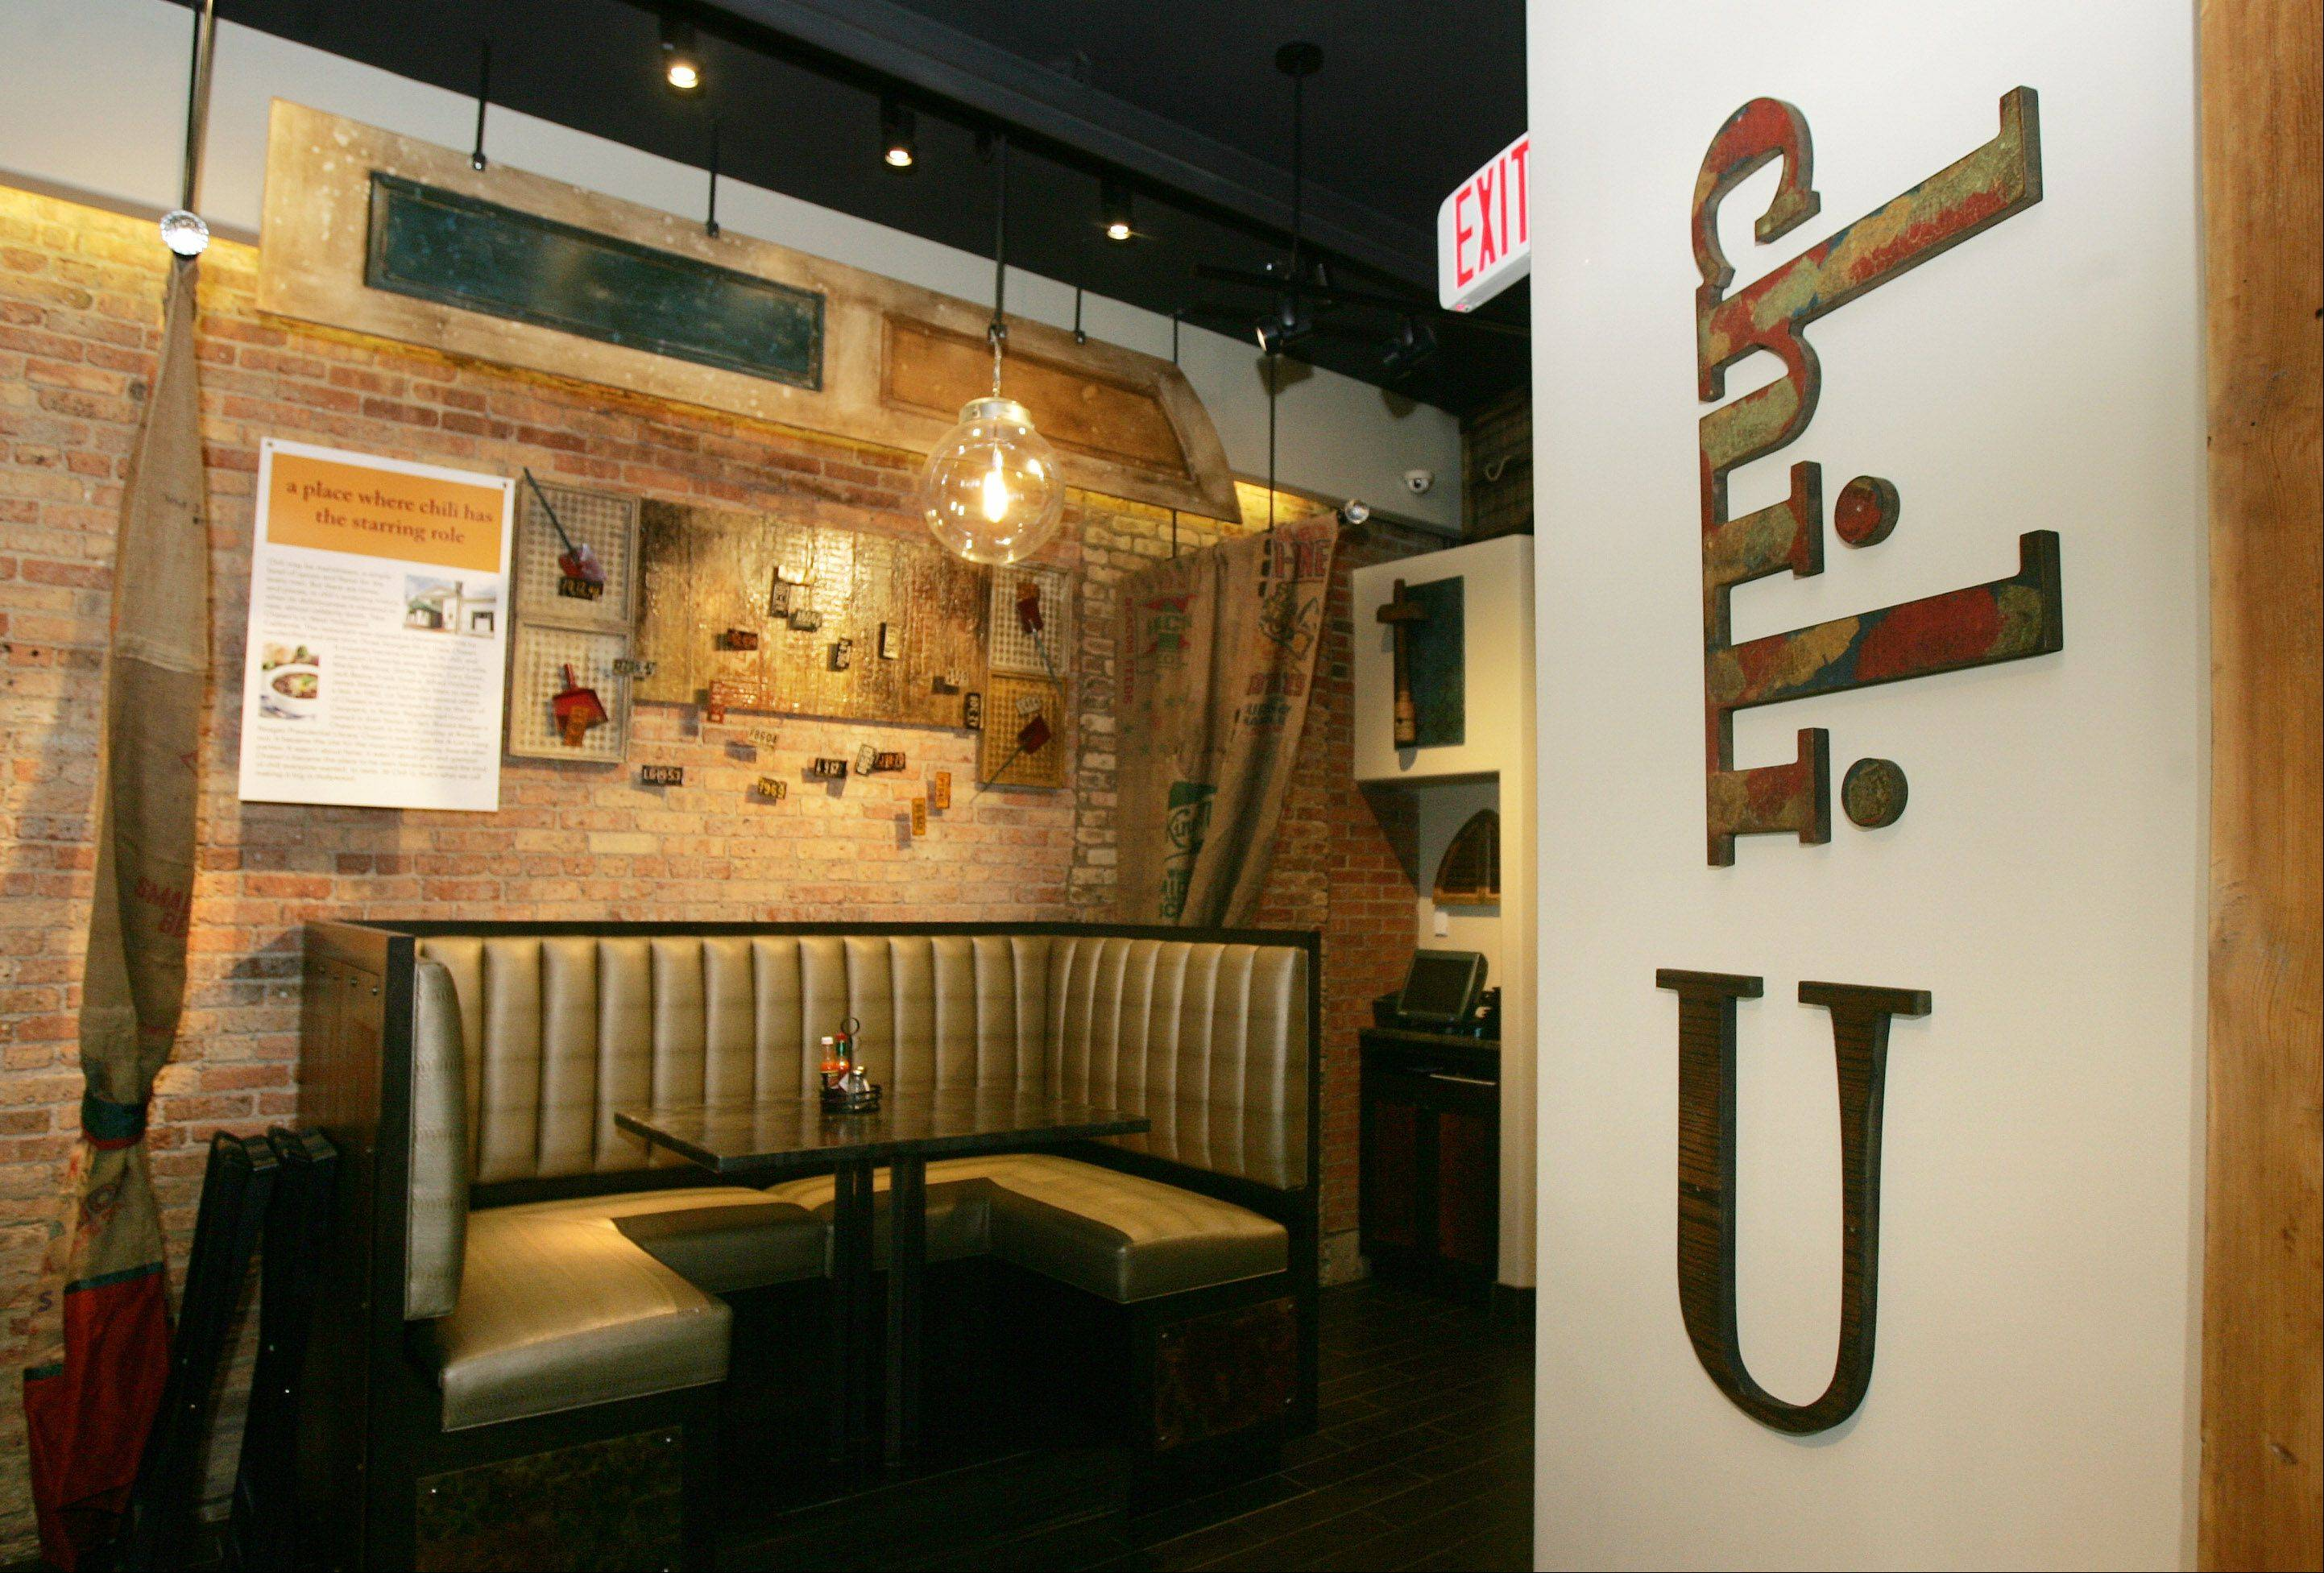 The bar at Chili U in Libertyville offers 15 draft beers and a number of specialty cocktails.